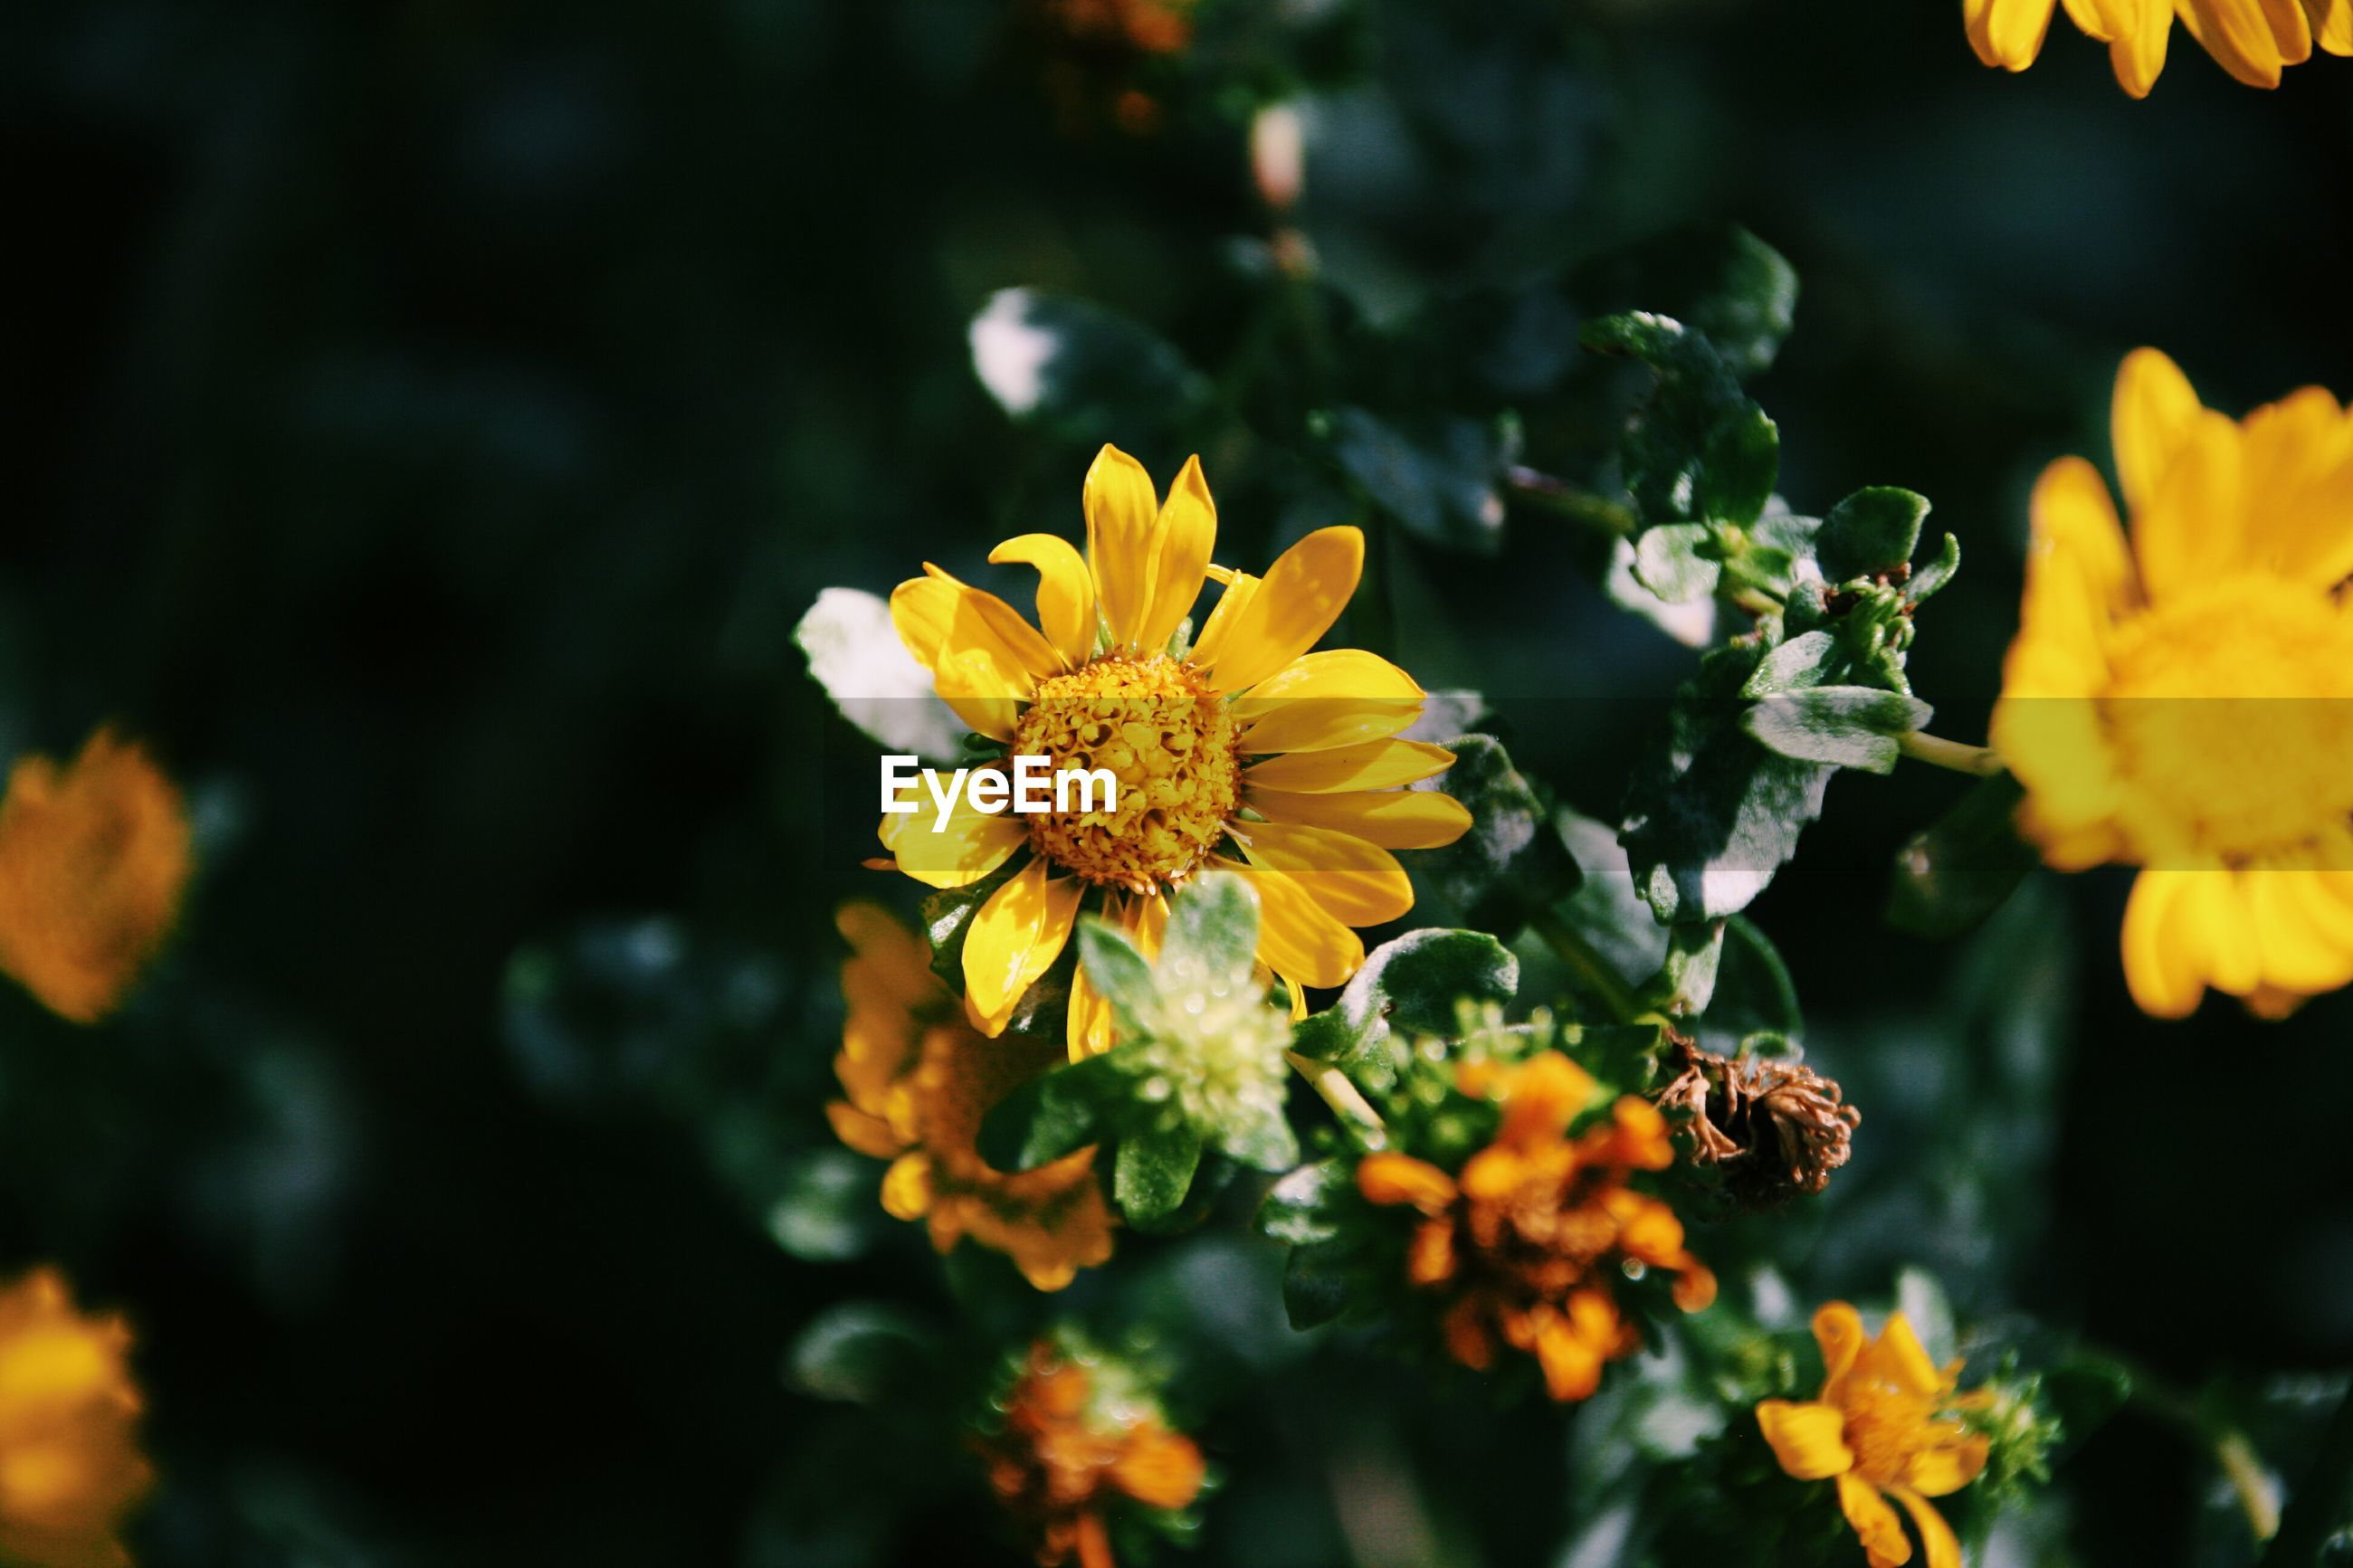 flower, petal, yellow, freshness, flower head, fragility, growth, blooming, beauty in nature, close-up, focus on foreground, pollen, plant, nature, in bloom, blossom, selective focus, outdoors, day, springtime